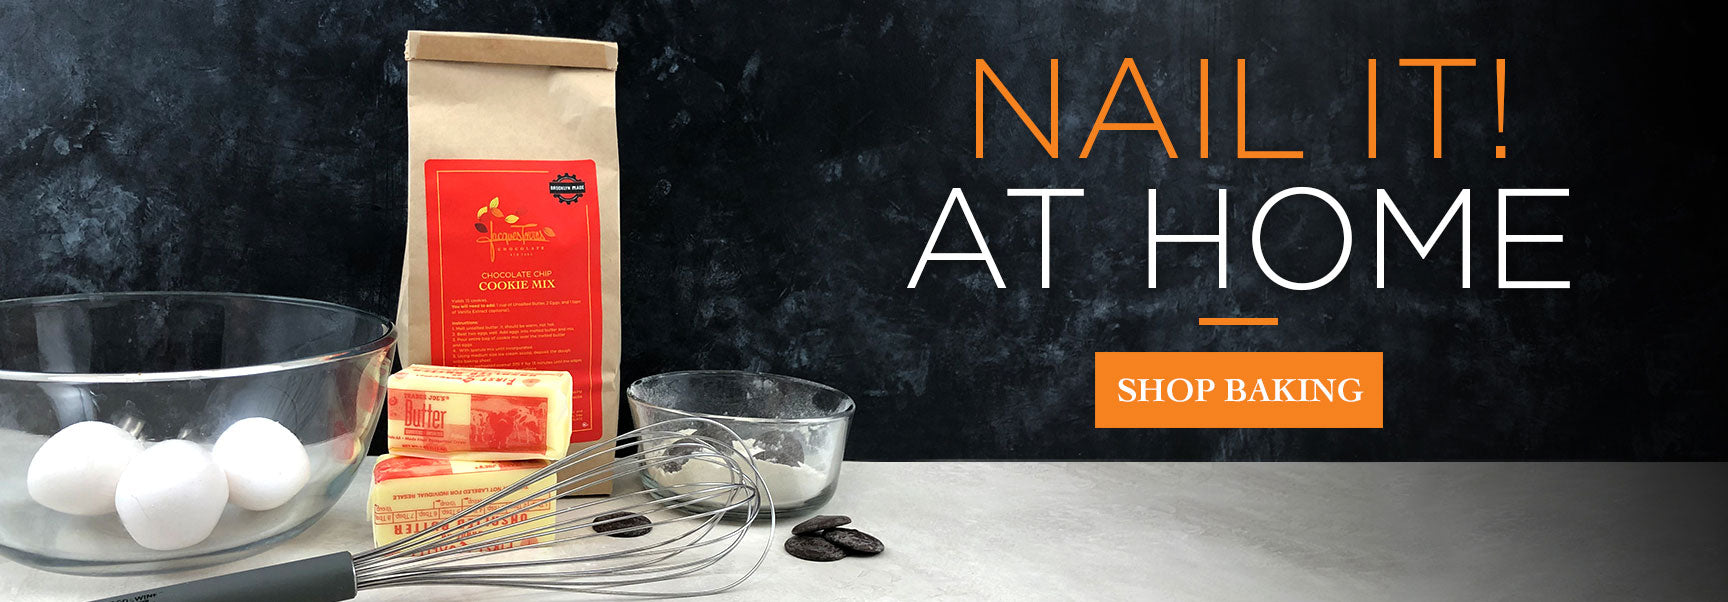 Nail it at Home with Jacques Torres Baking items